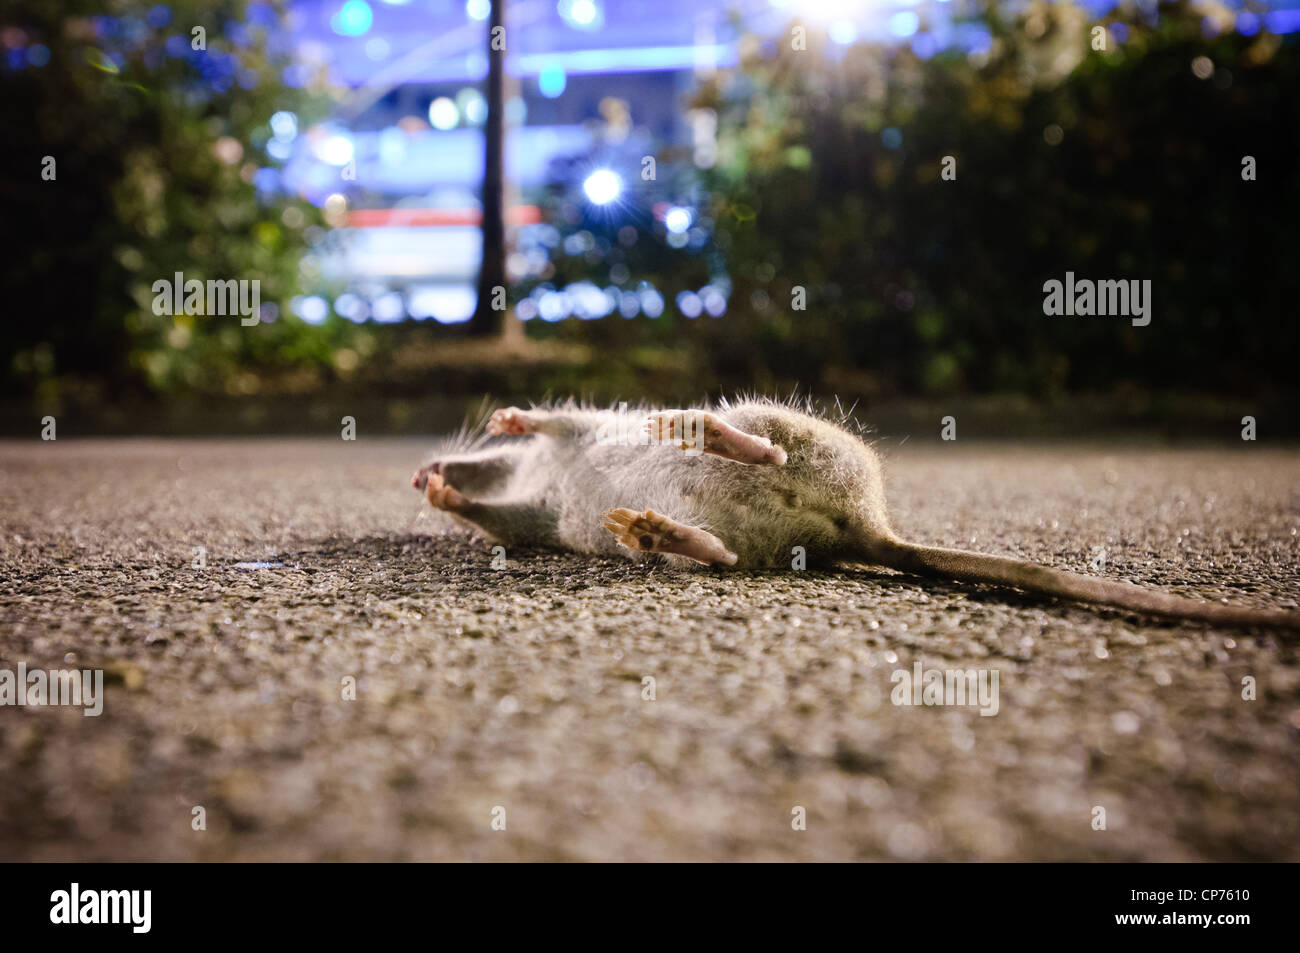 A dead rat on a bike path in New York City, NY, USA. - Stock Image